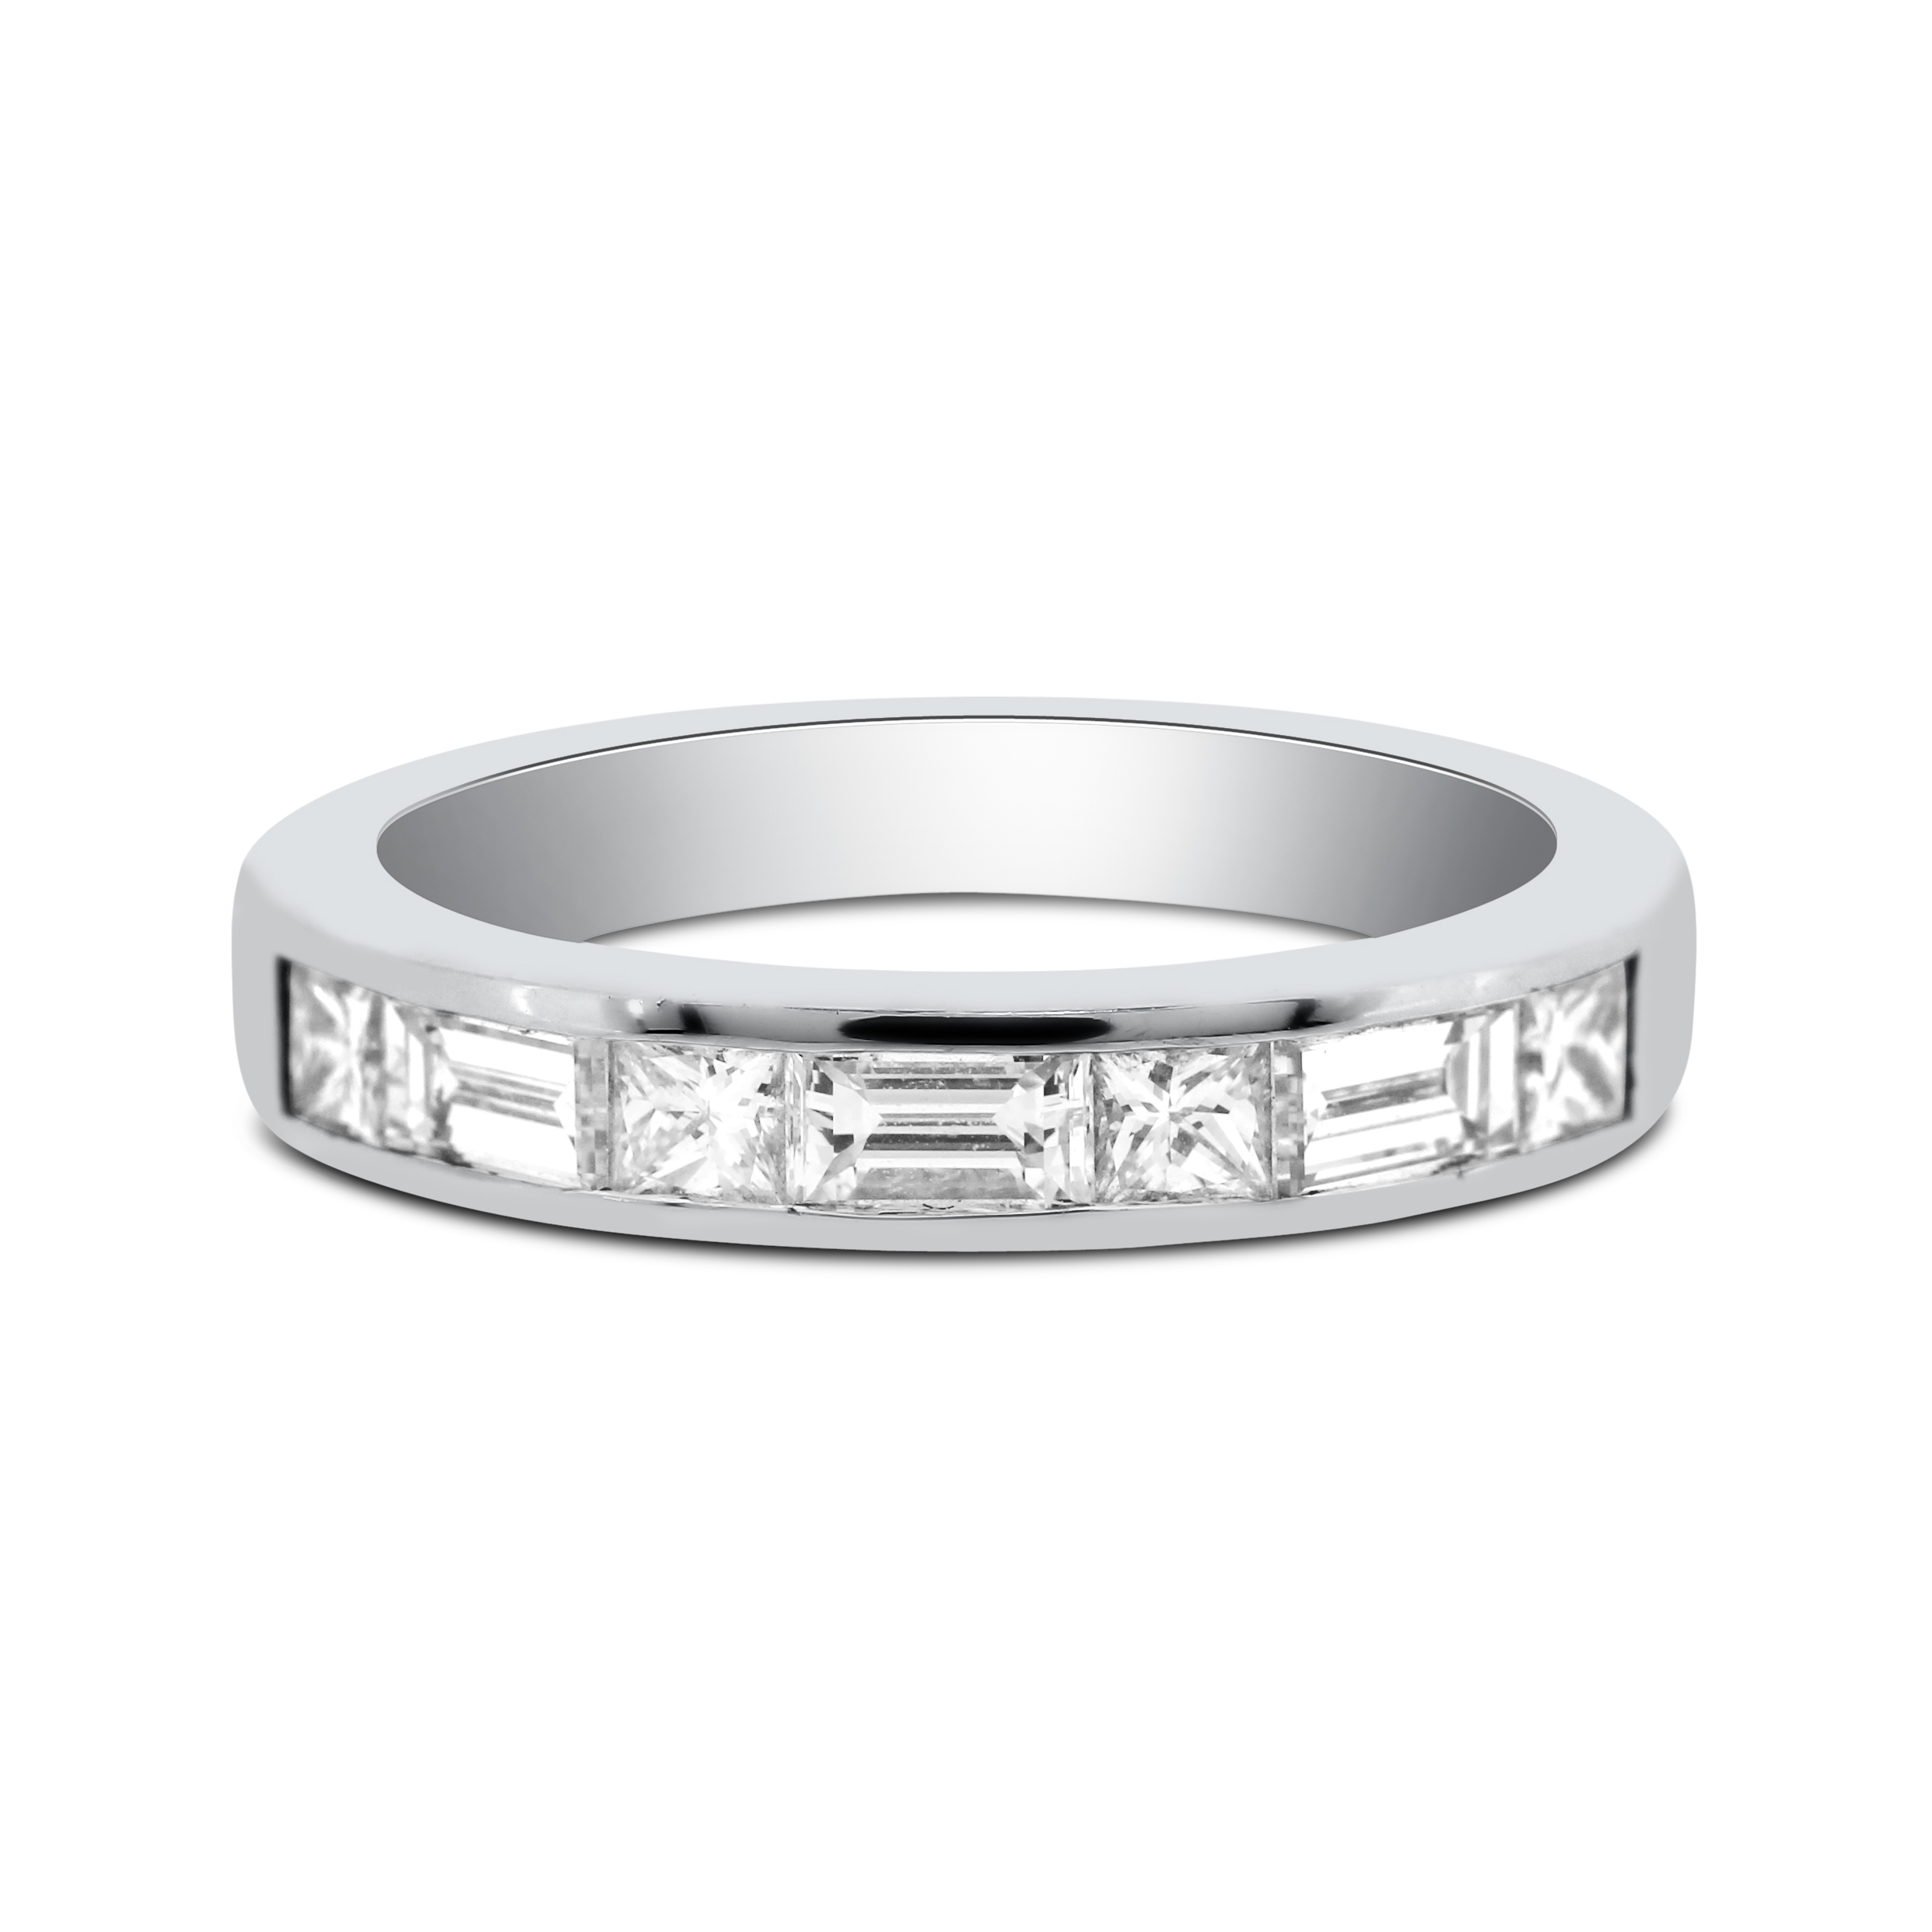 platinum baguette diamond raine band wedding bands product turgeon